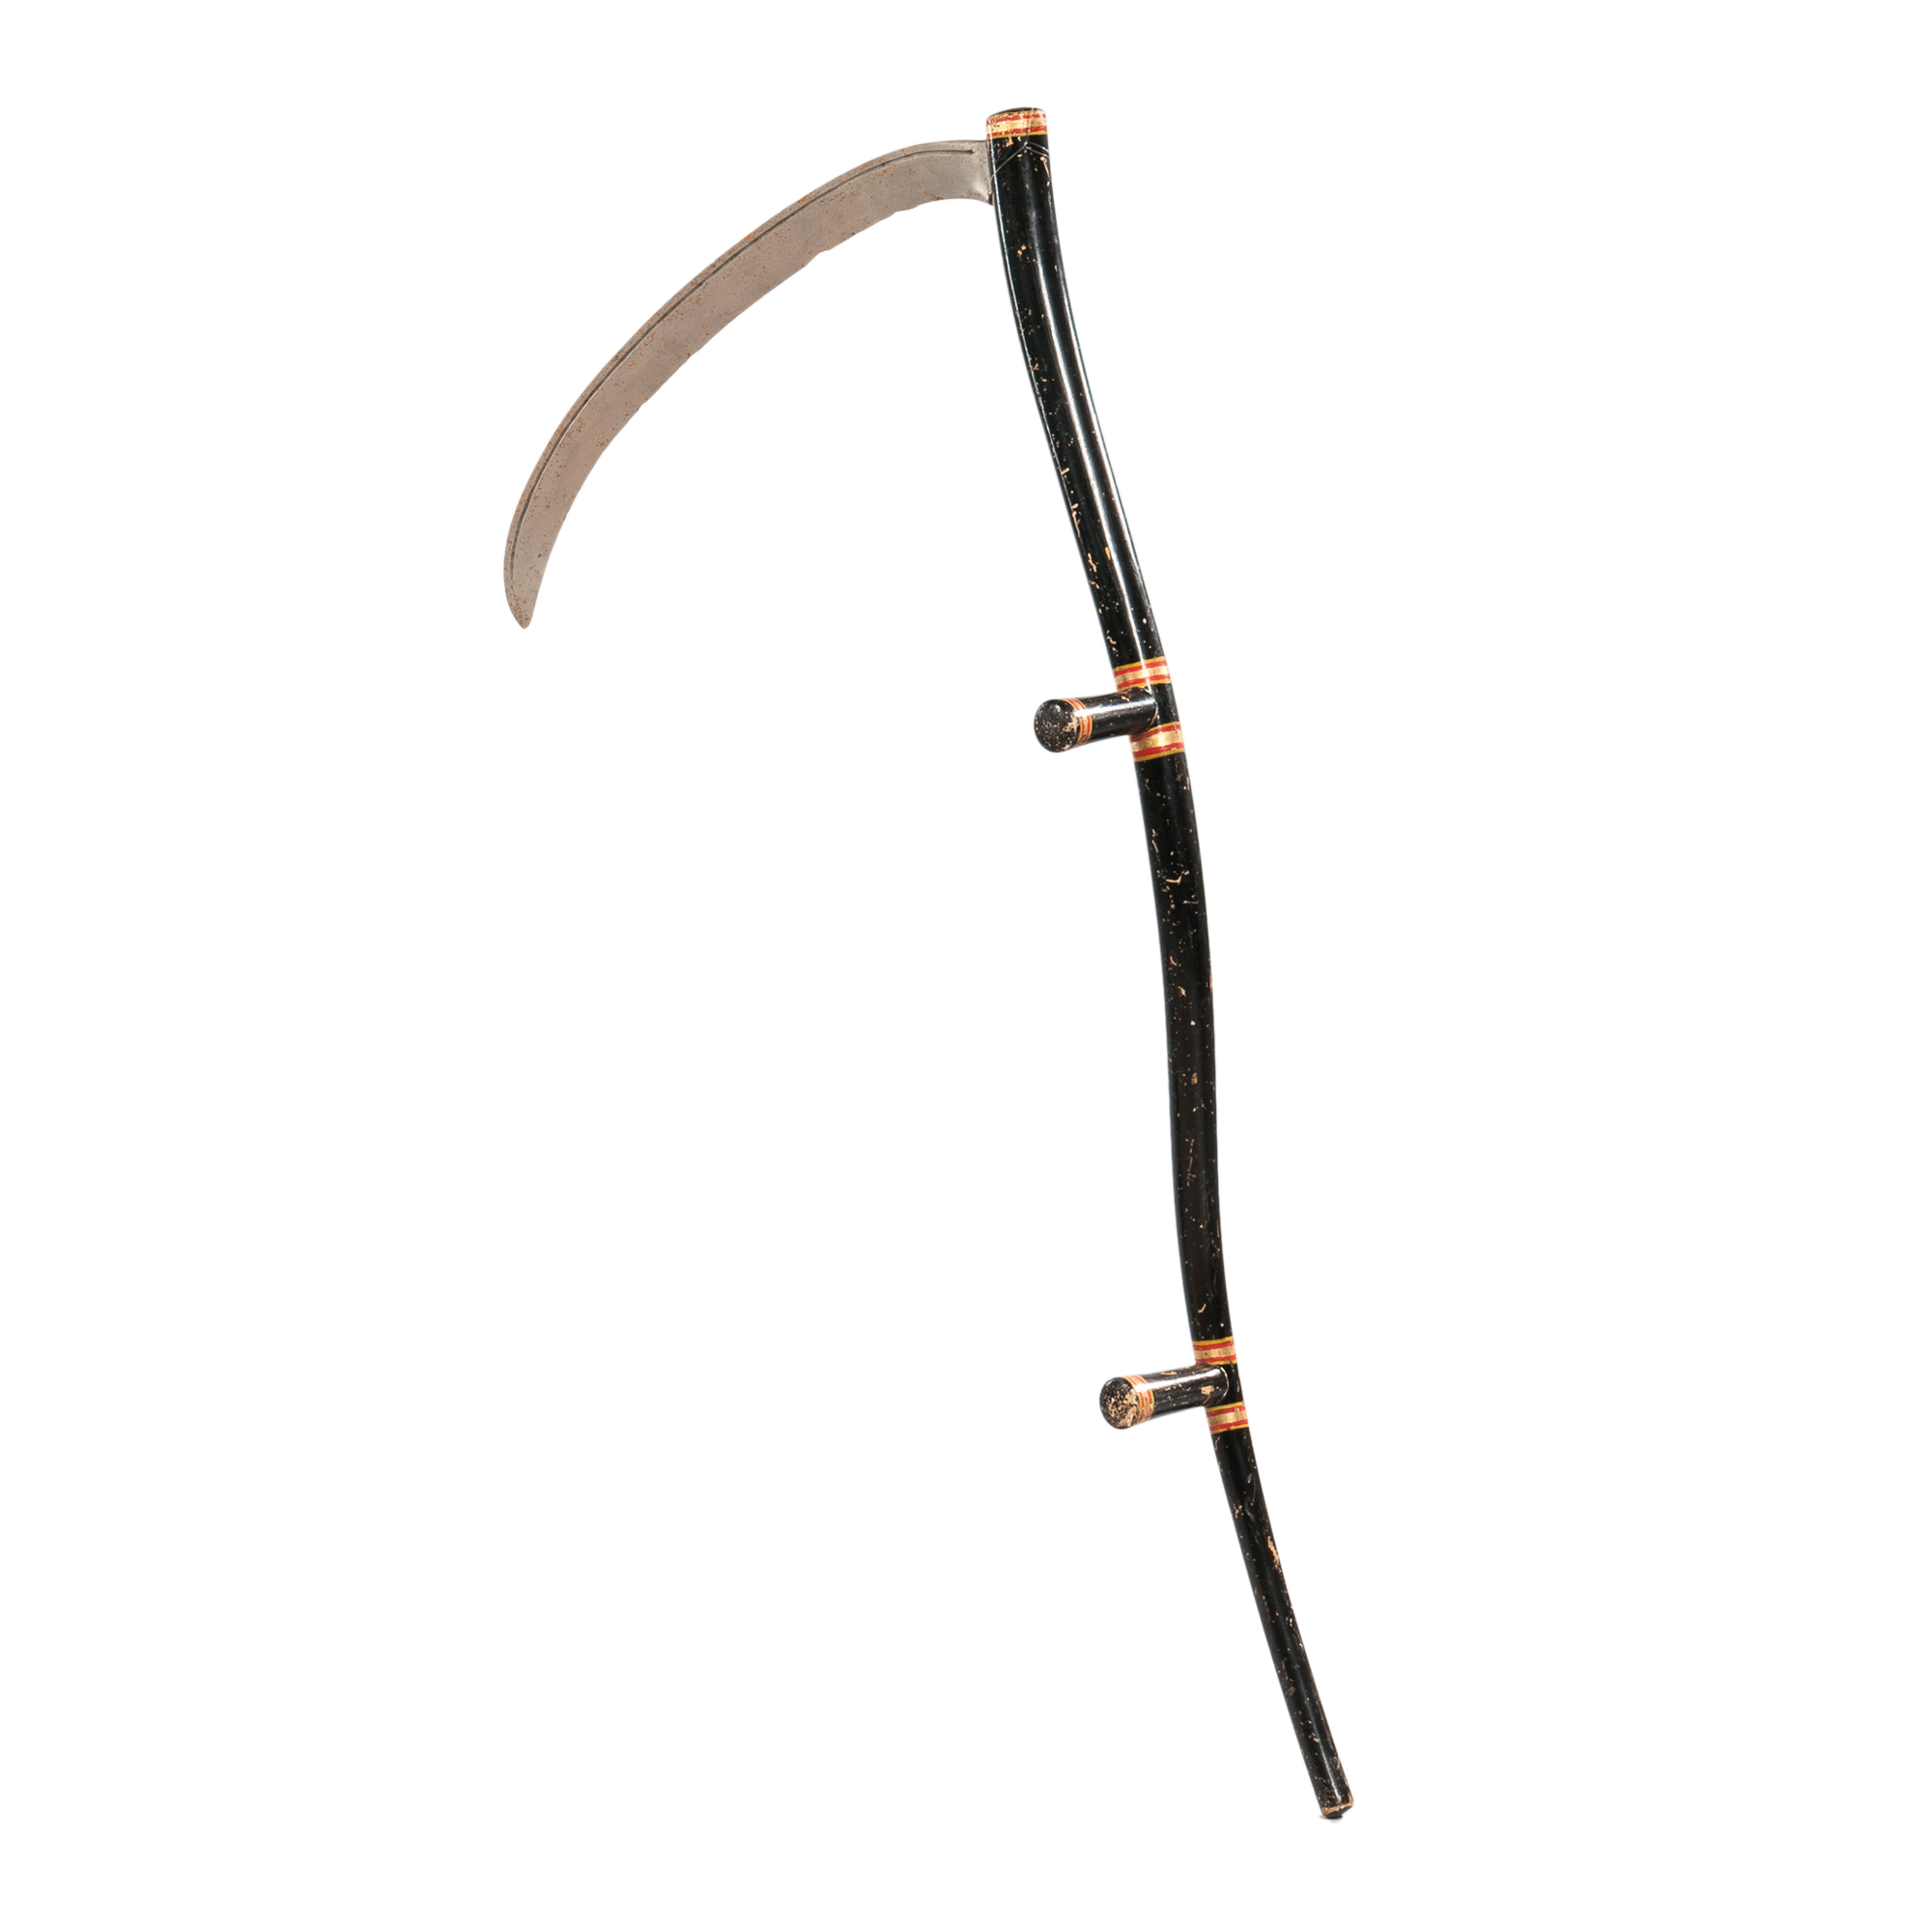 Black- and Silver-painted Odd Fellows Scythe (Lot 1786, Estimate: $600-800)